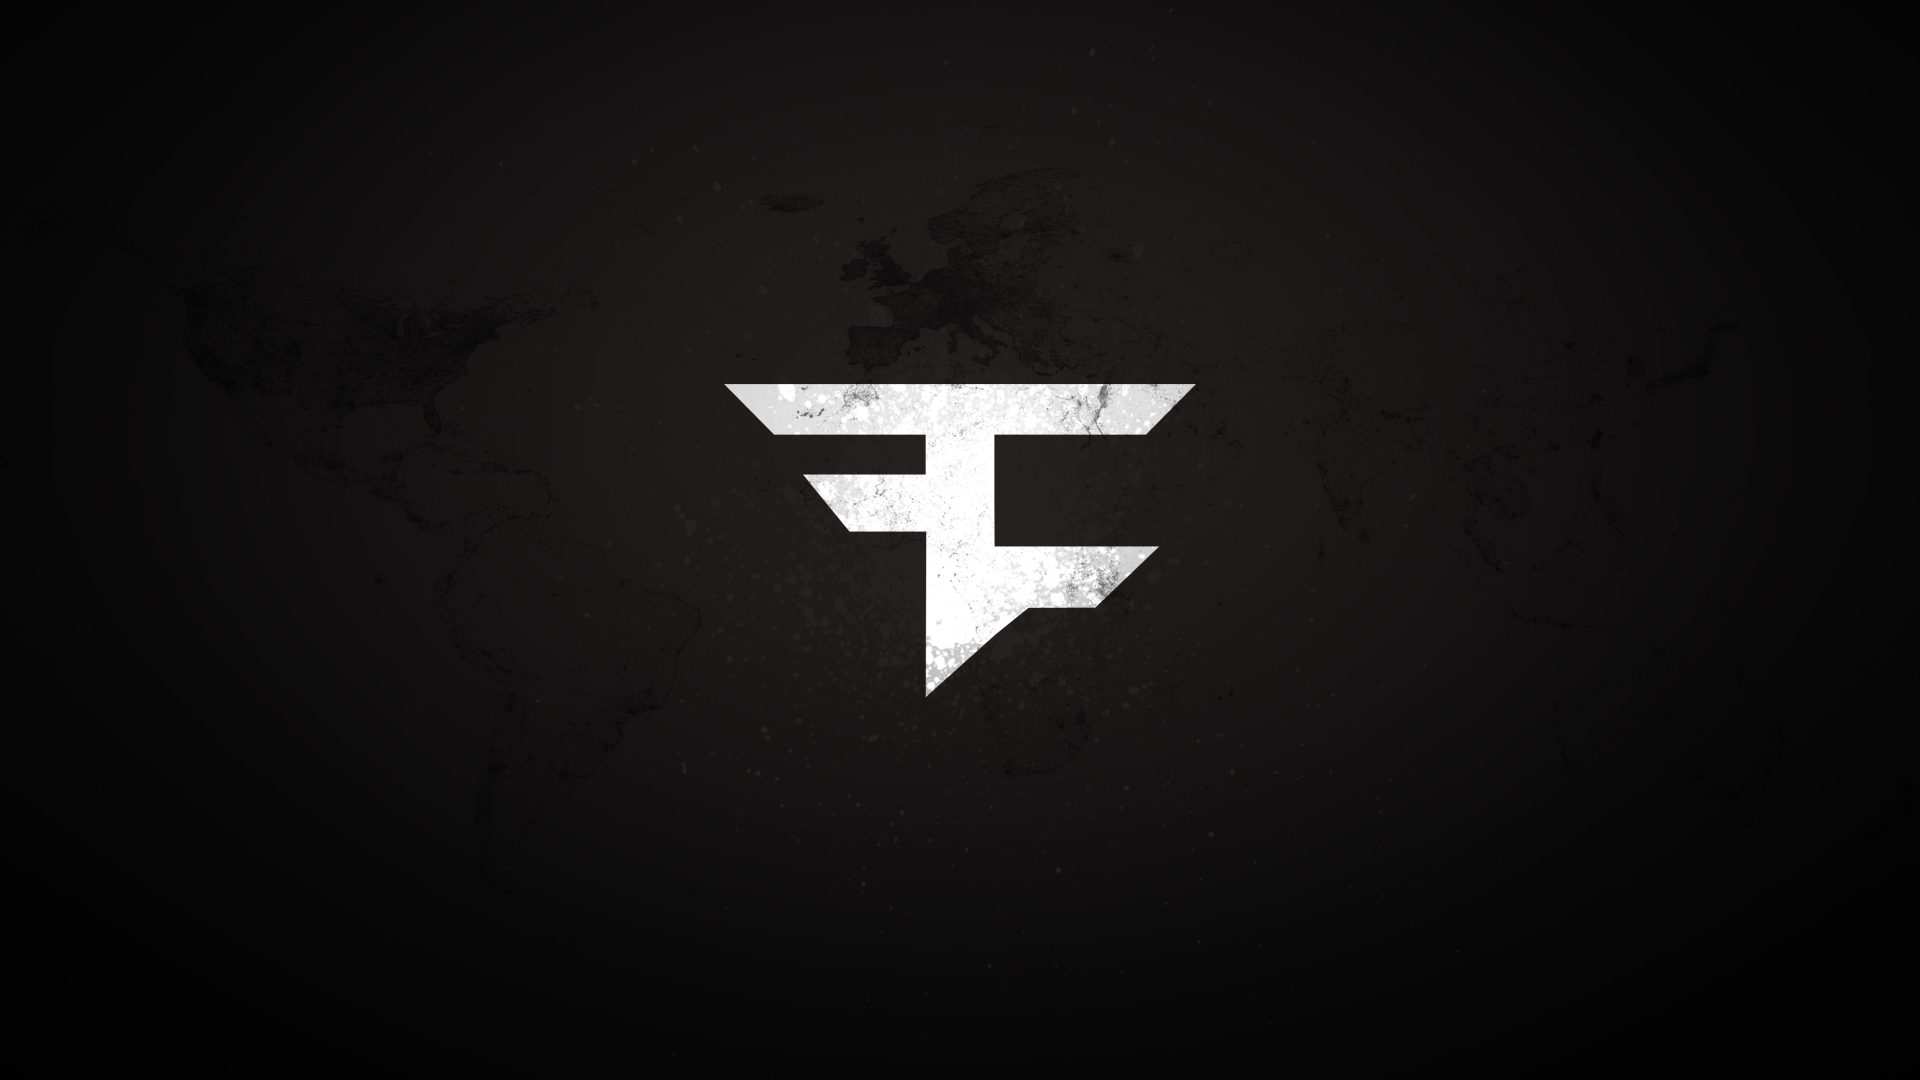 FaZe Clan is a team of gamers with over 2 million